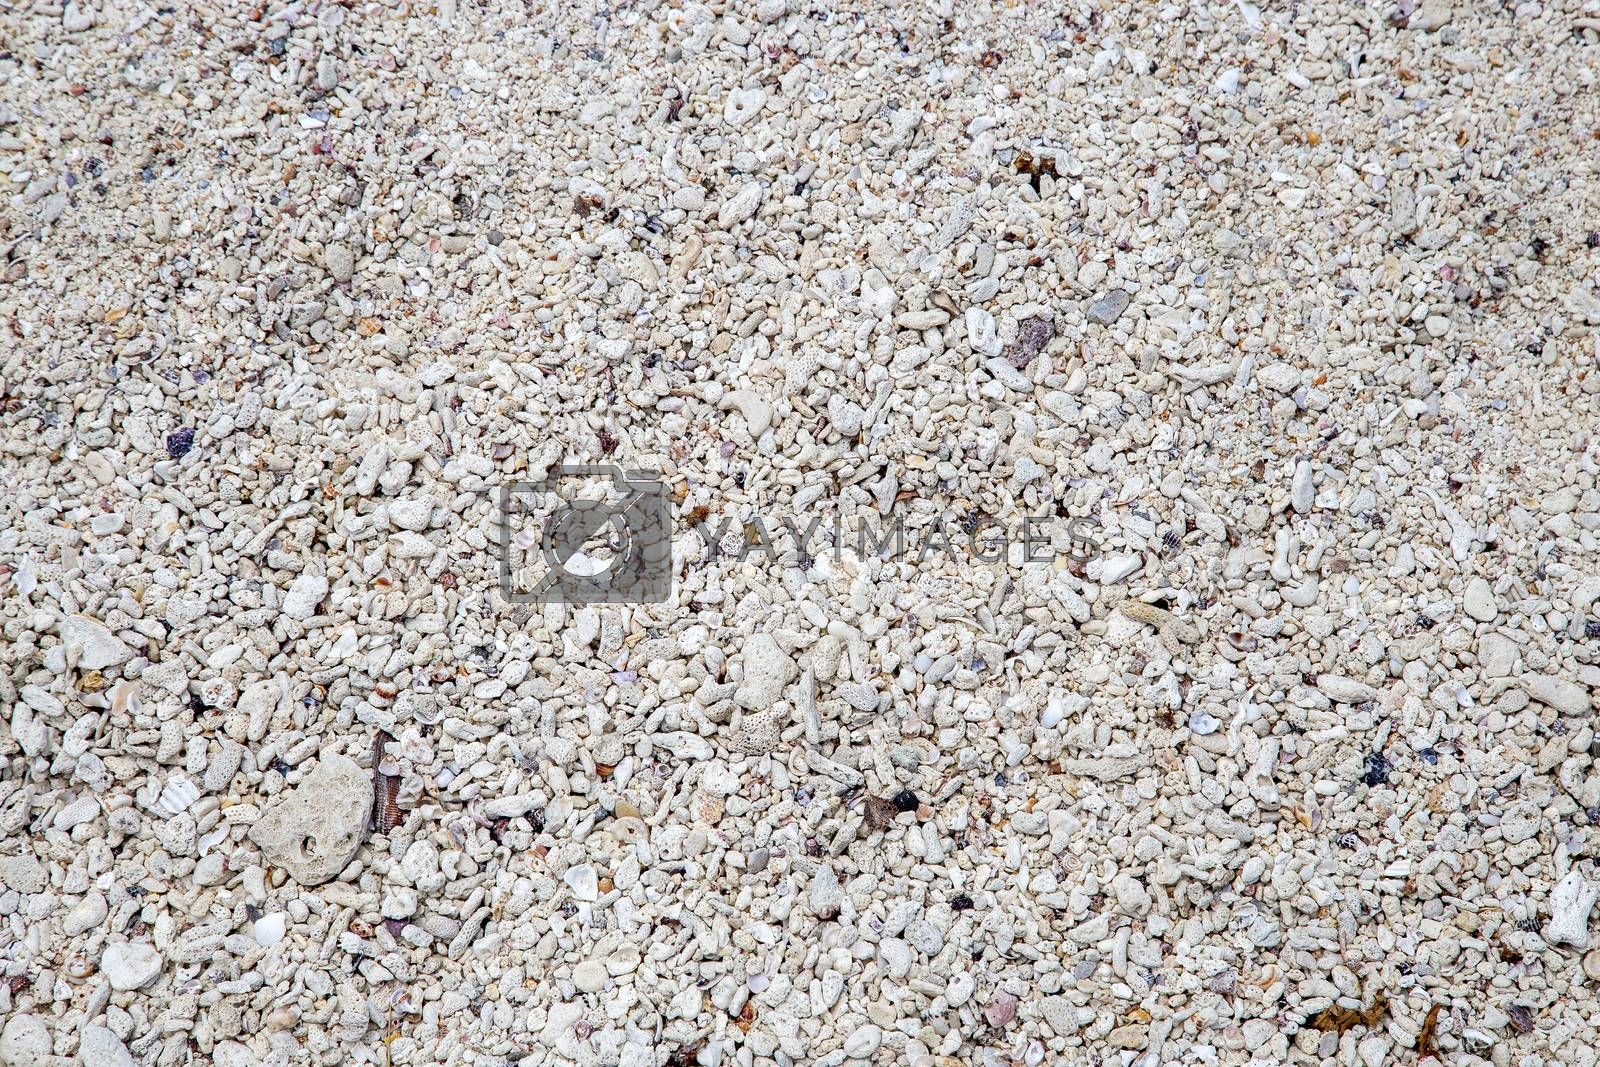 Background of shells, rocks and coral on beach